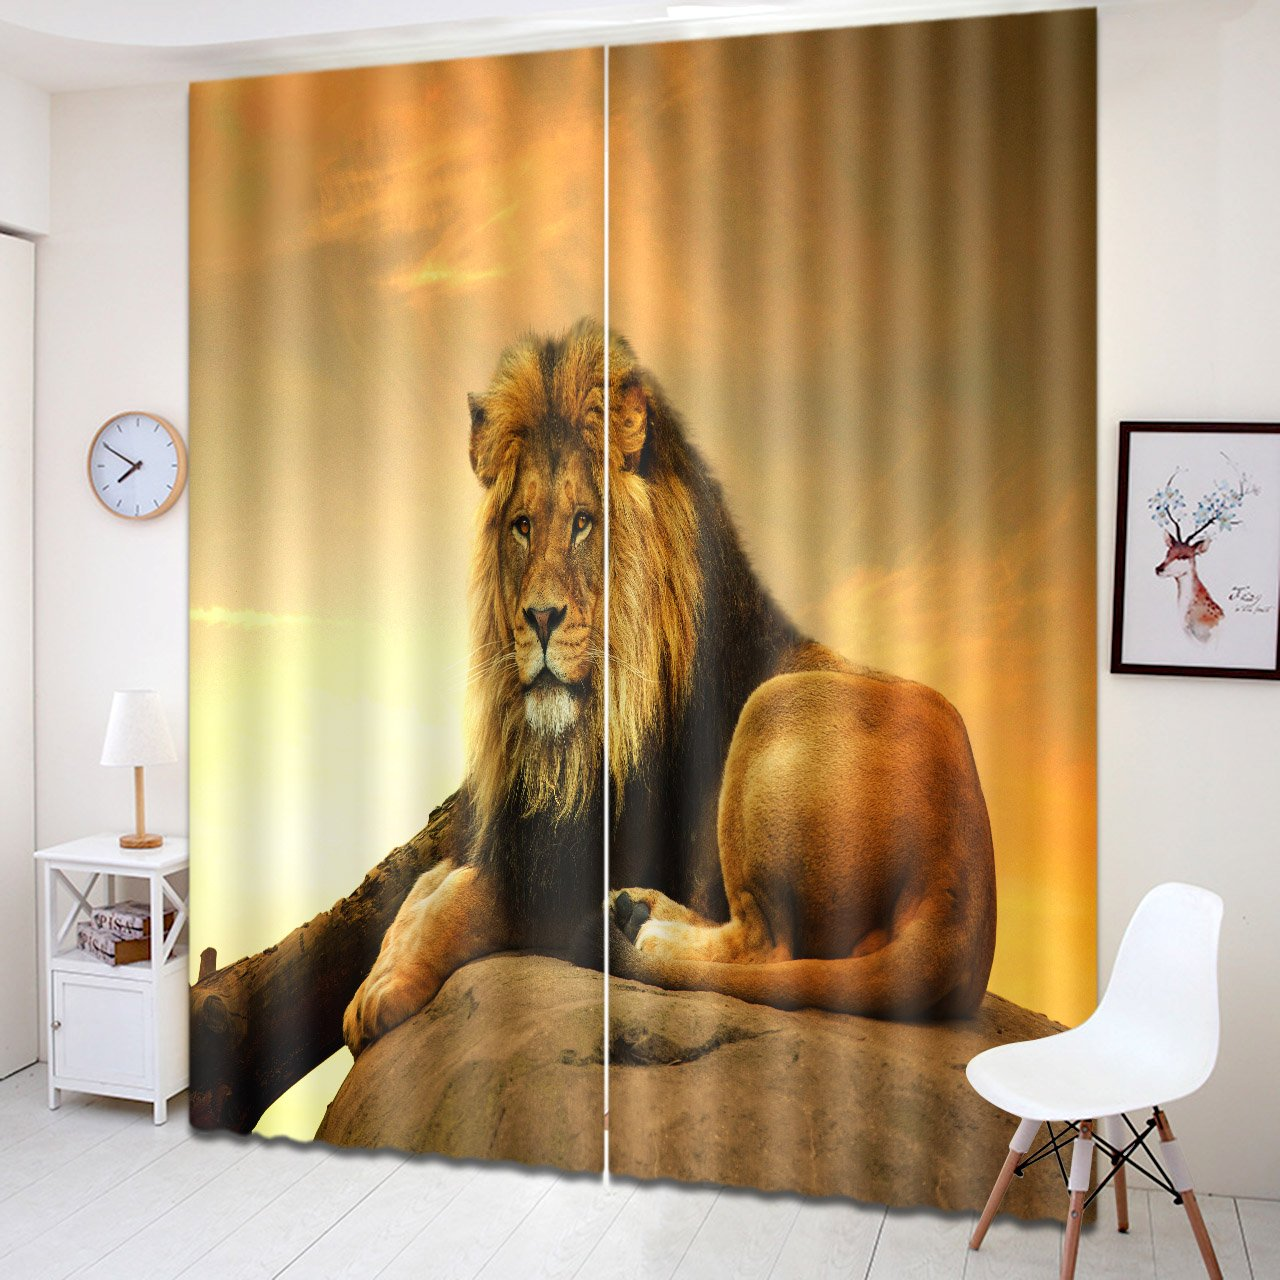 LB Teen Kids Animals Decor Room Darkening Thermal Insulated Blackout Curtains,Lying Lion 3D Window Curtains Drapes Living Room Bedroom 2 Panels Set,28 in Width 65 inch Length by LB (Image #4)